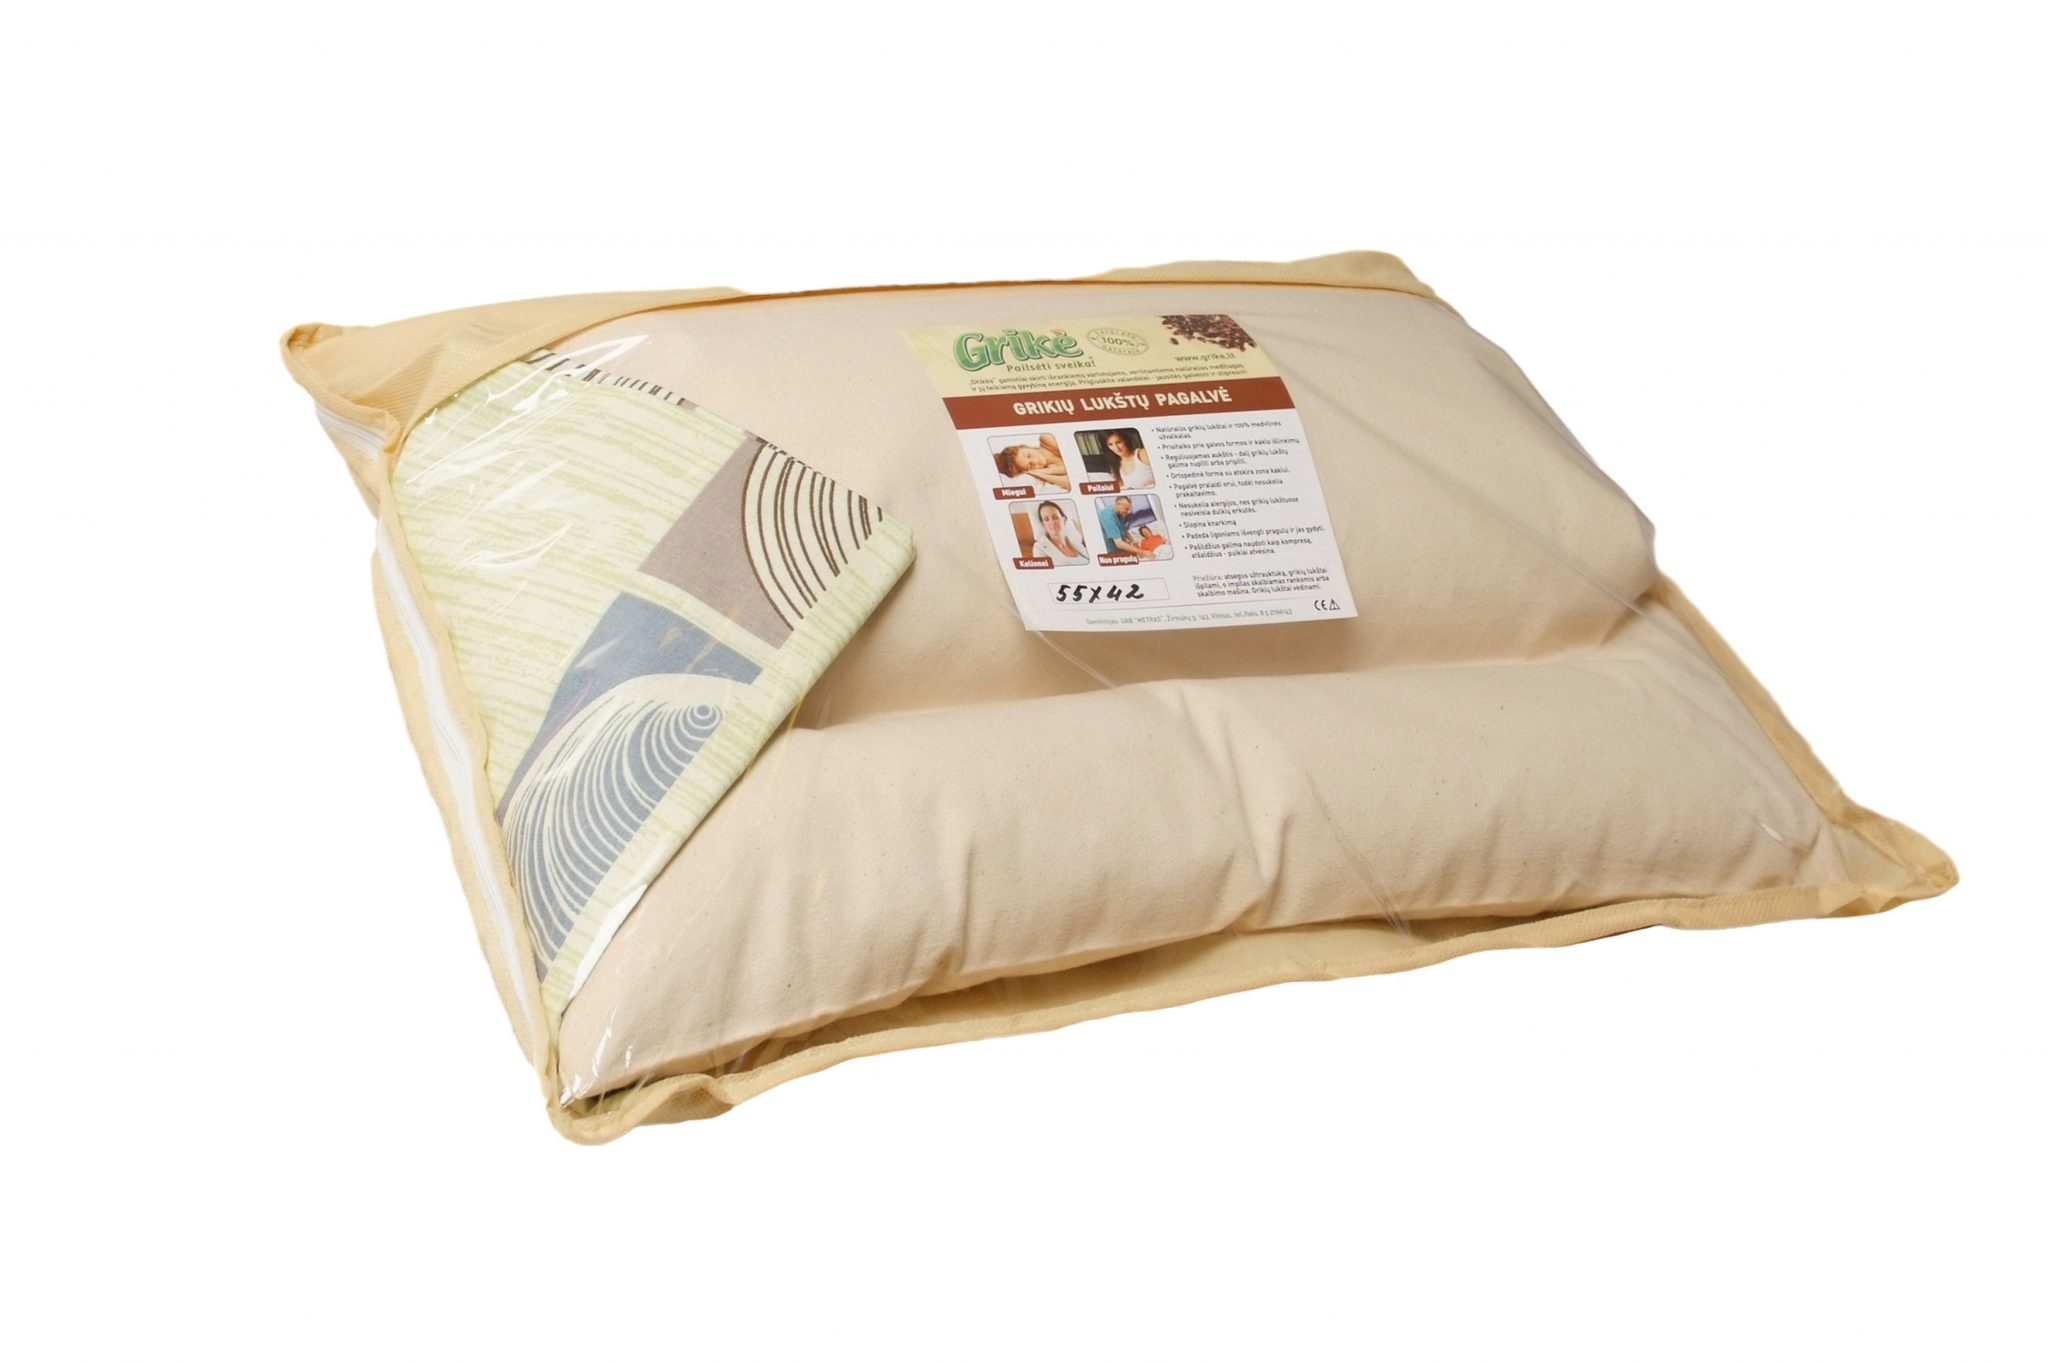 comfycomfy usa buckwheat hull pillow x the comfysleep detail in made